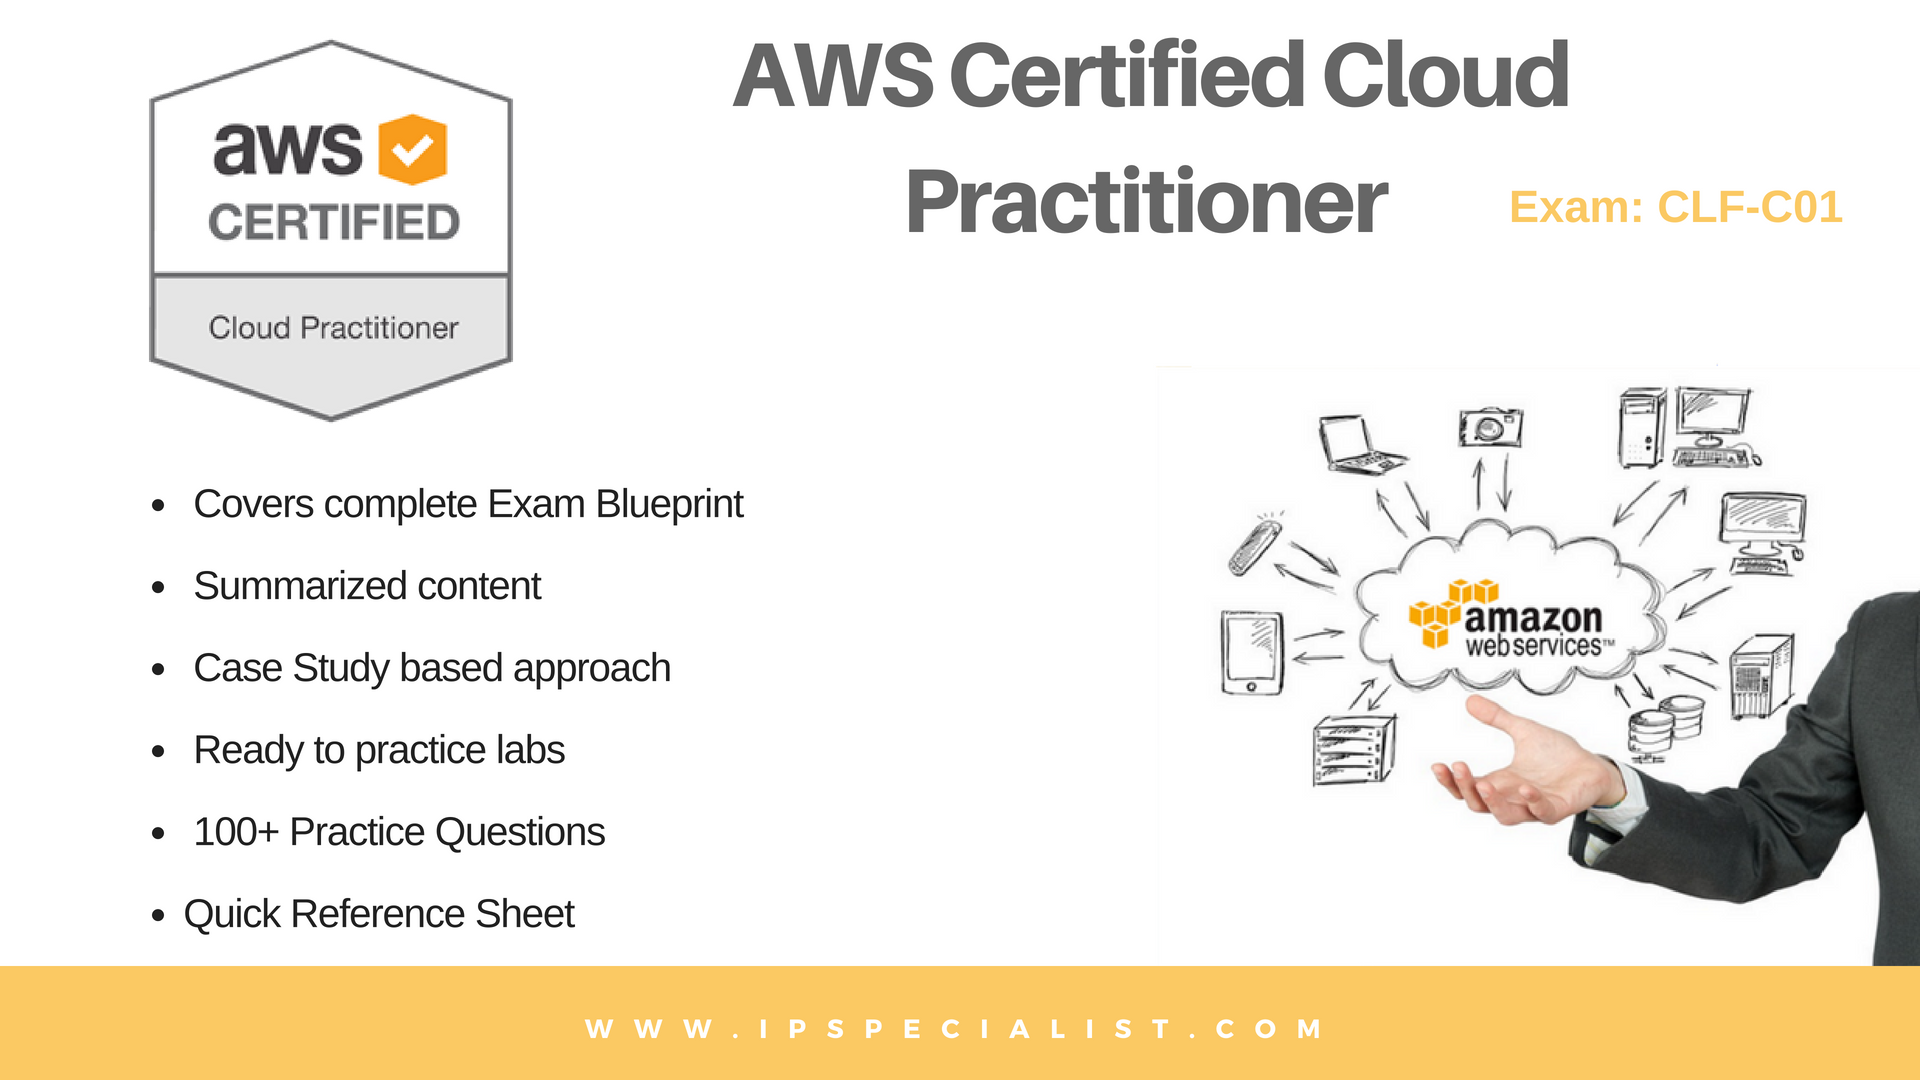 aws cloud practitioner study guide Archives - IPSpecialist